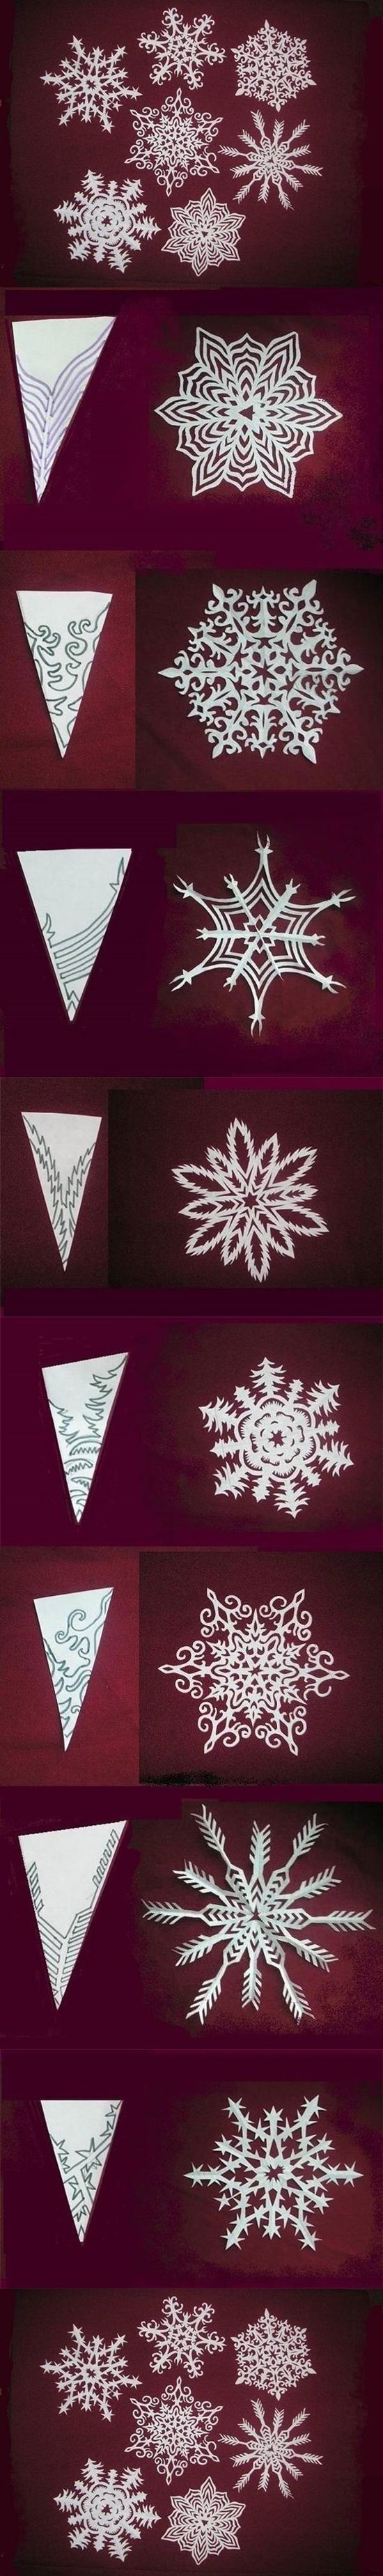 Wonderful DIY Paper Snowflakes With Pattern | WonderfulDIY.com by KariB